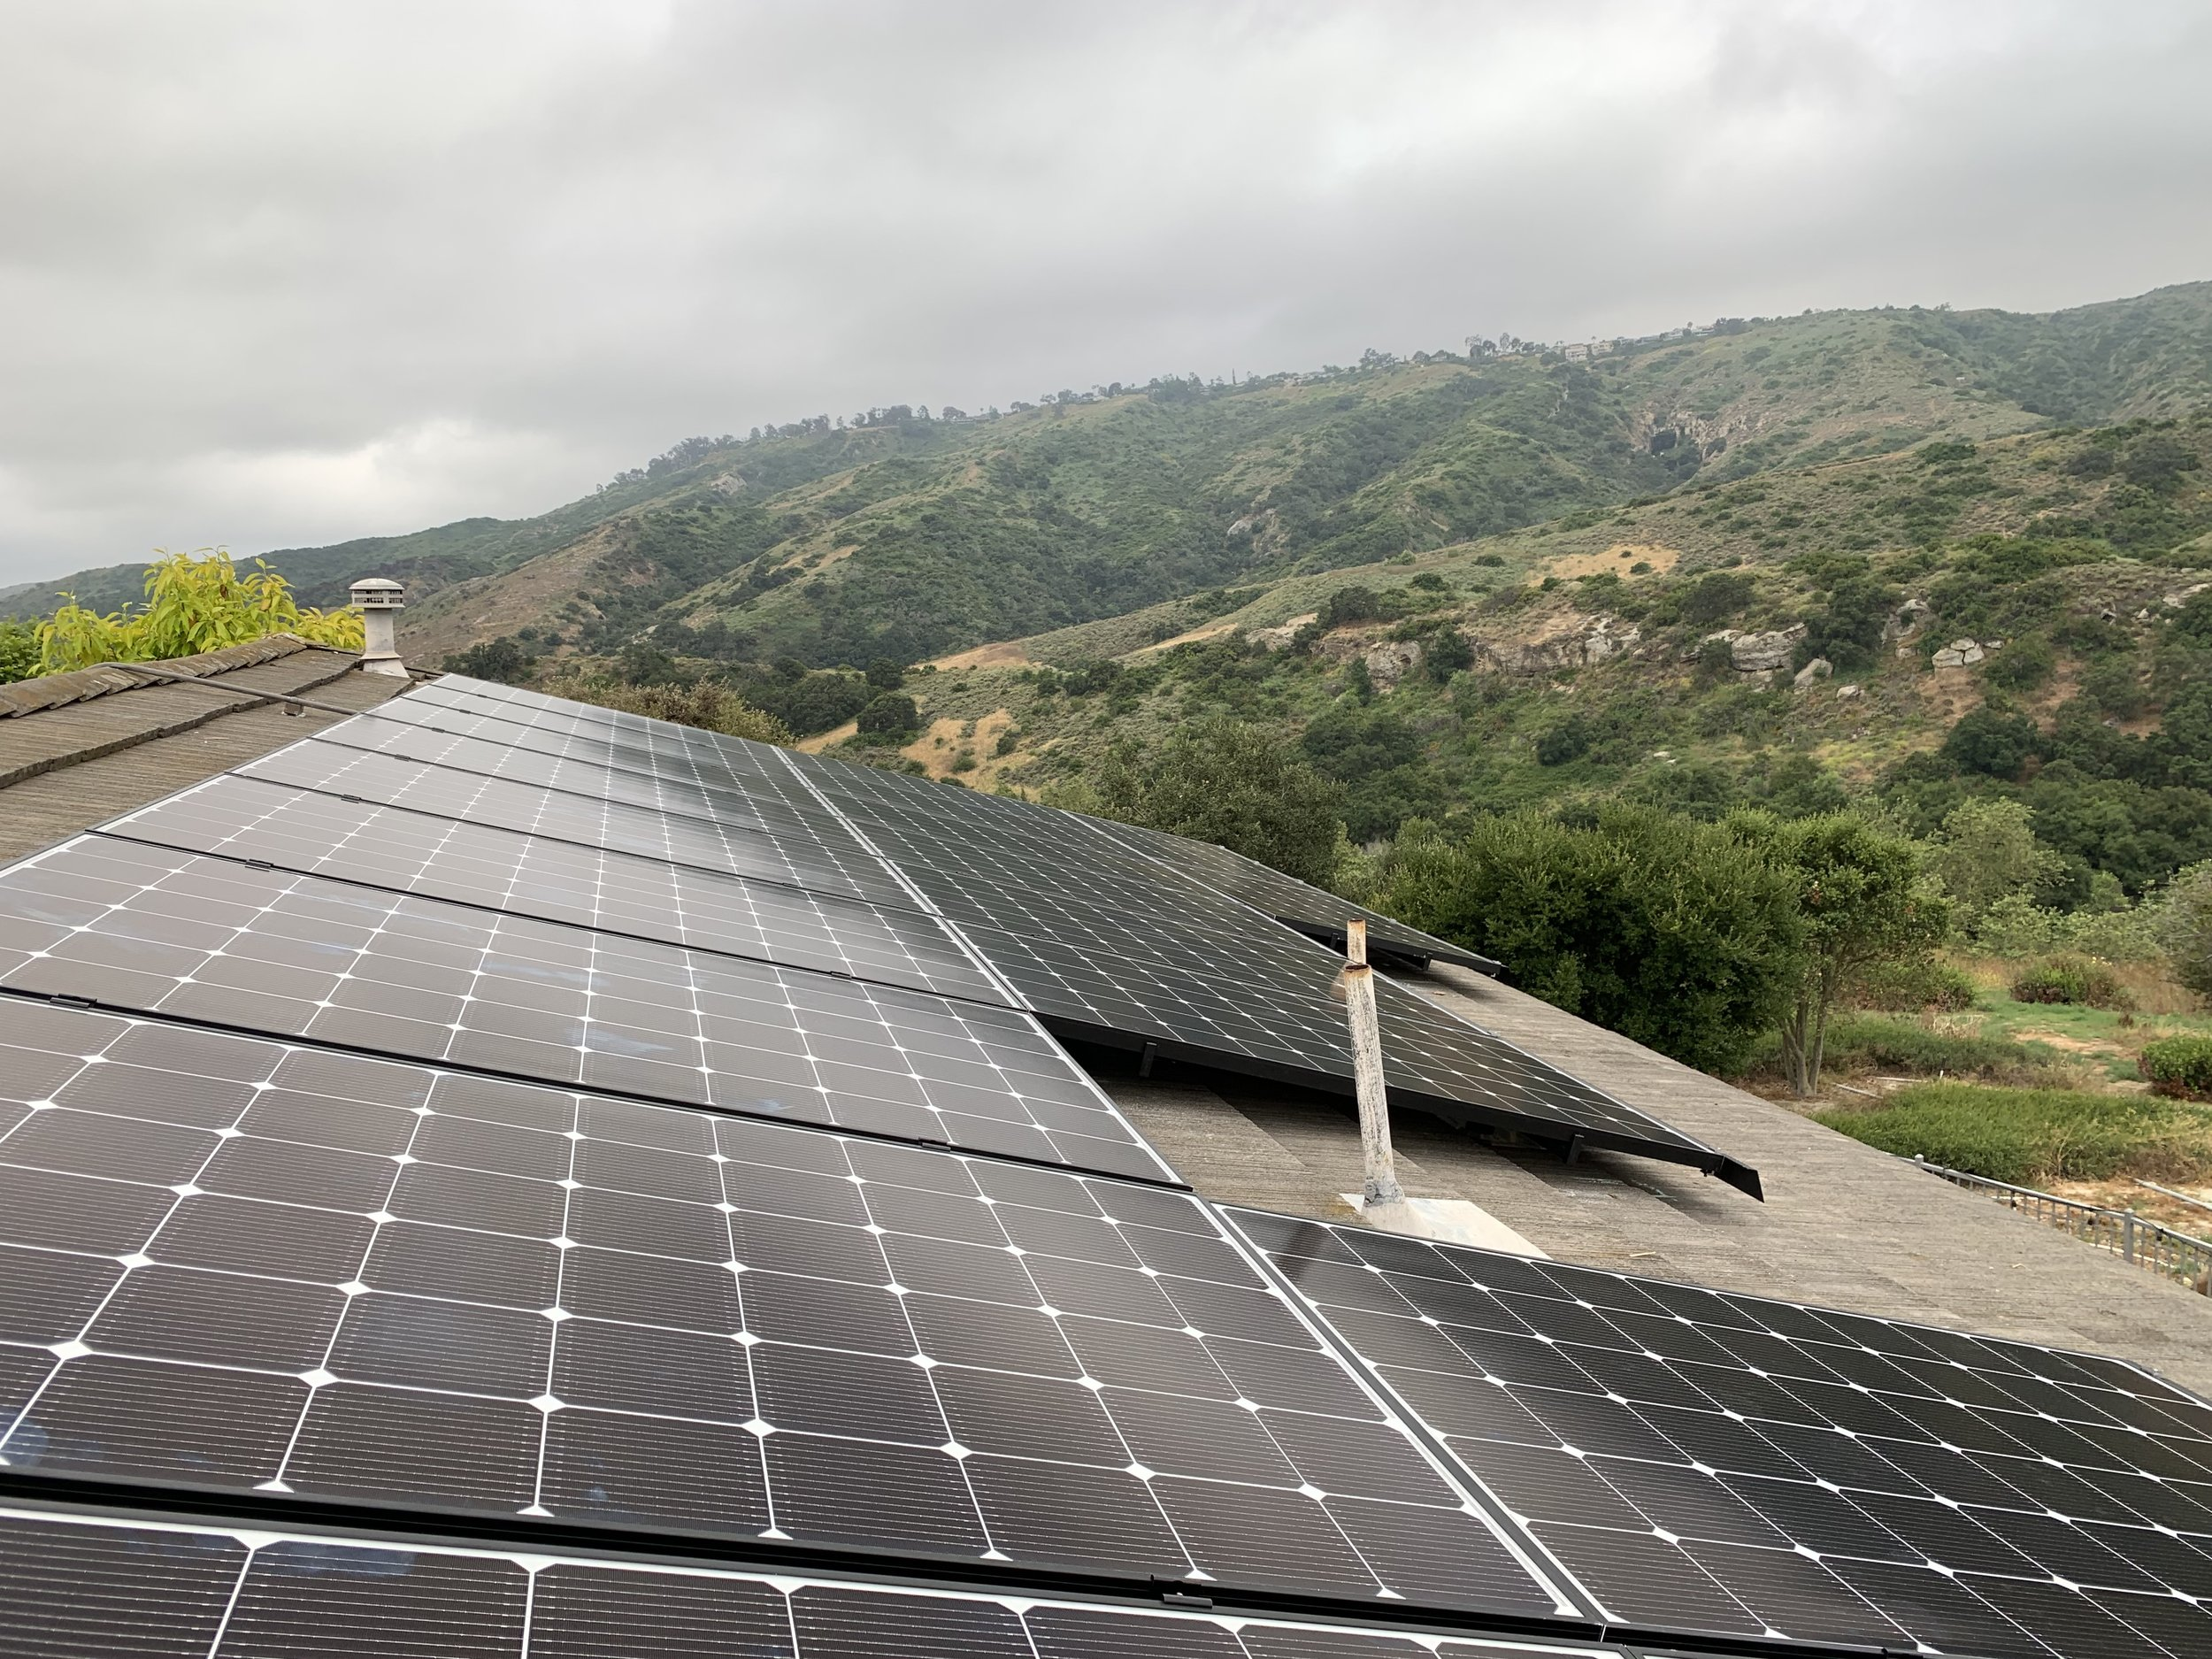 ALISO VIEJO, CA - 34 high efficiency PV modules total to 11.4 kWDC located in Aliso Viejo. This system was commissioned in 2019 and is expected to save the Homeowner over $100,000 in electricity bills over the next 25 years.